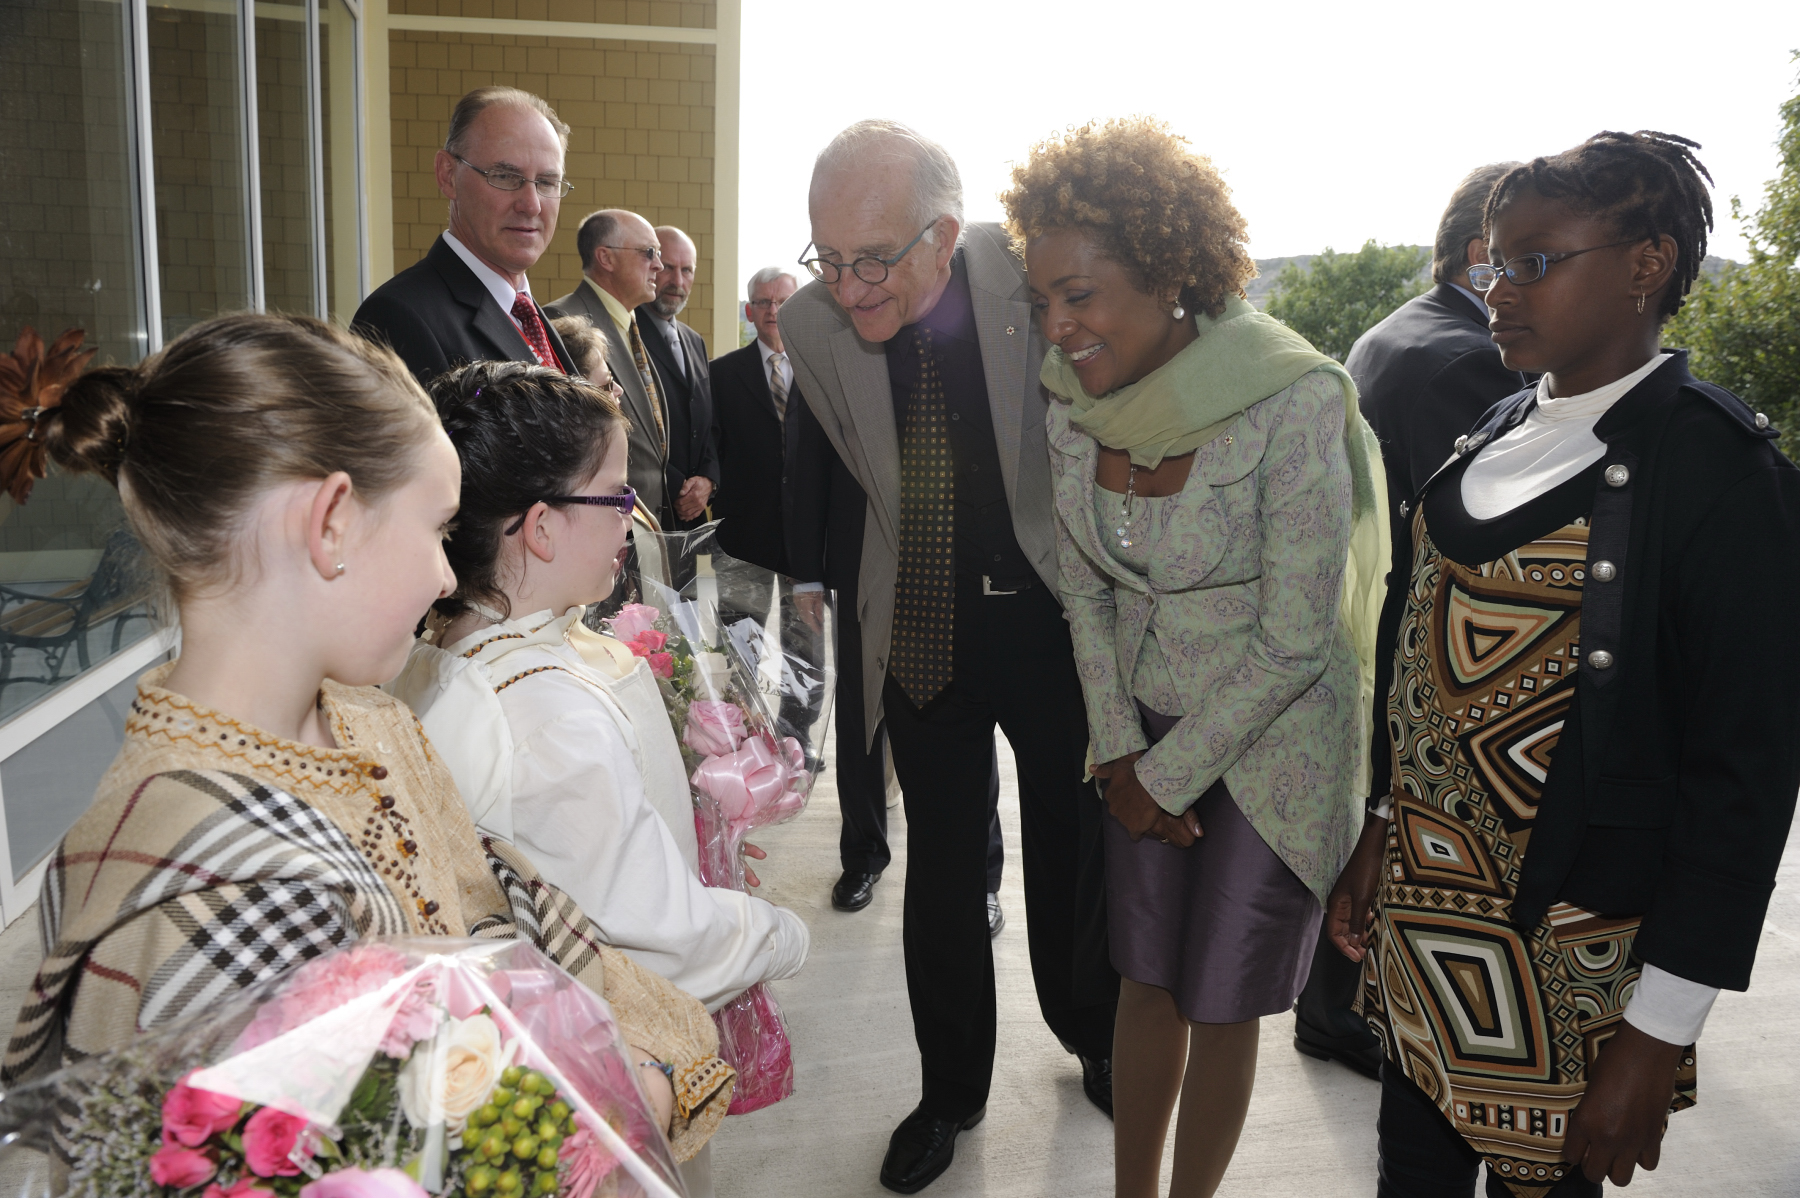 As part of the regional visit to Newfoundland and Labrador, the Governor General and Mr. Jean-Daniel Lafond, along with their daughter Marie-Éden, visited Cupids Legacy Centre.